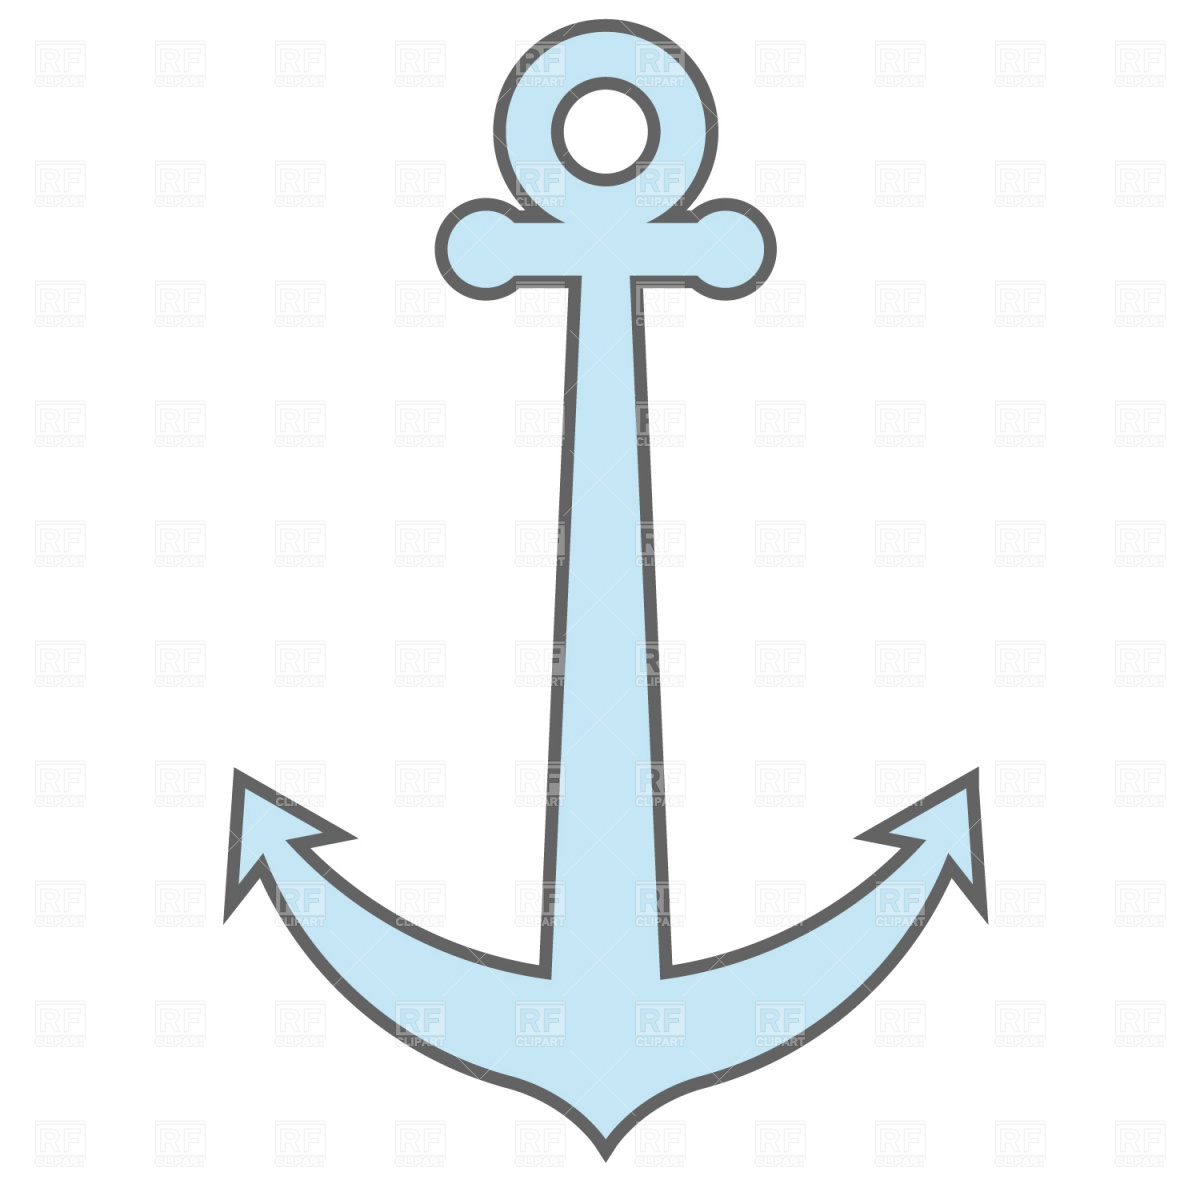 Boat kid catalog objects. Clipart anchor silhouette jpeg